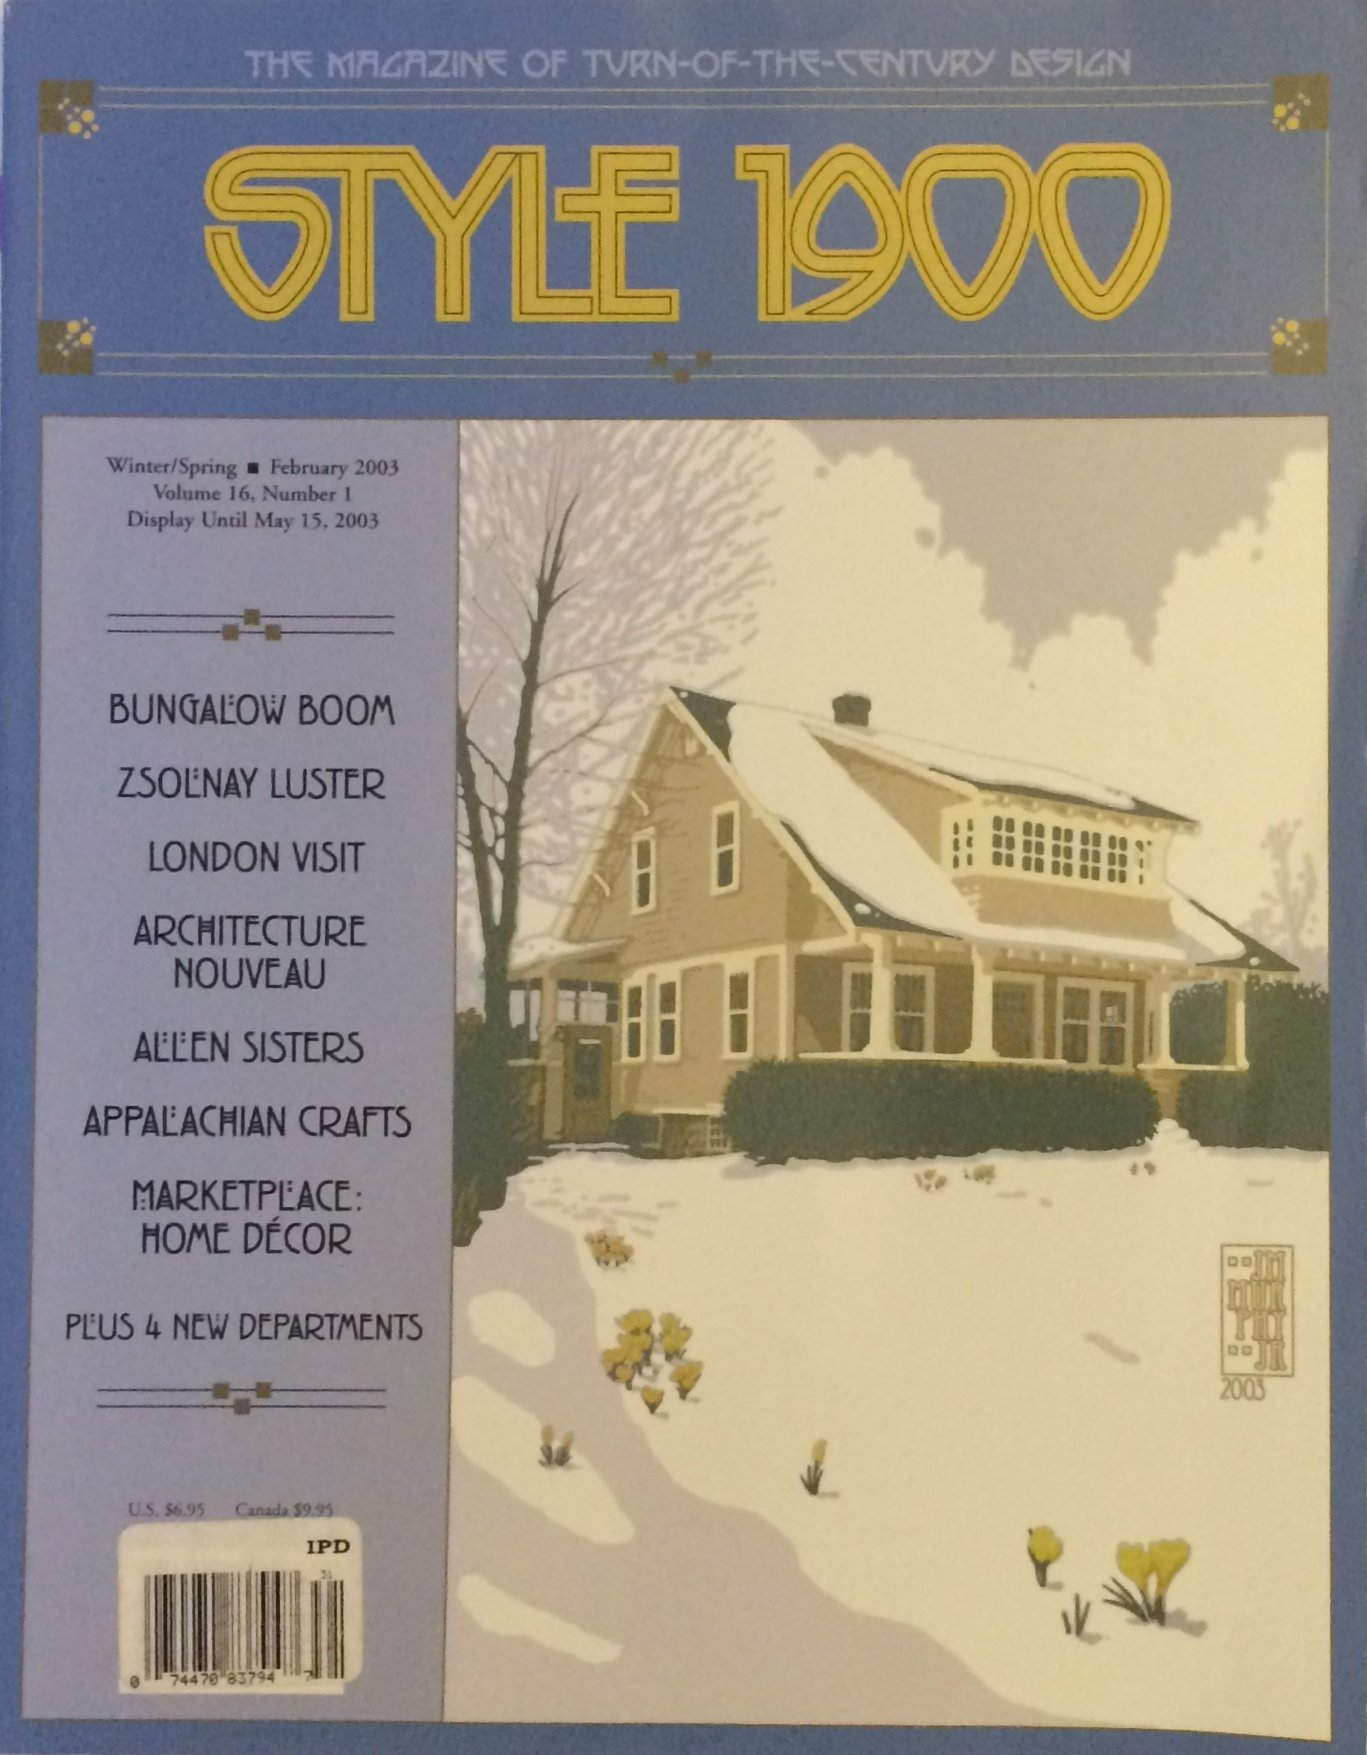 Download Style 1900 the Magazine of Turn-of-the-century Design, Volume 16, Number 1 PDF